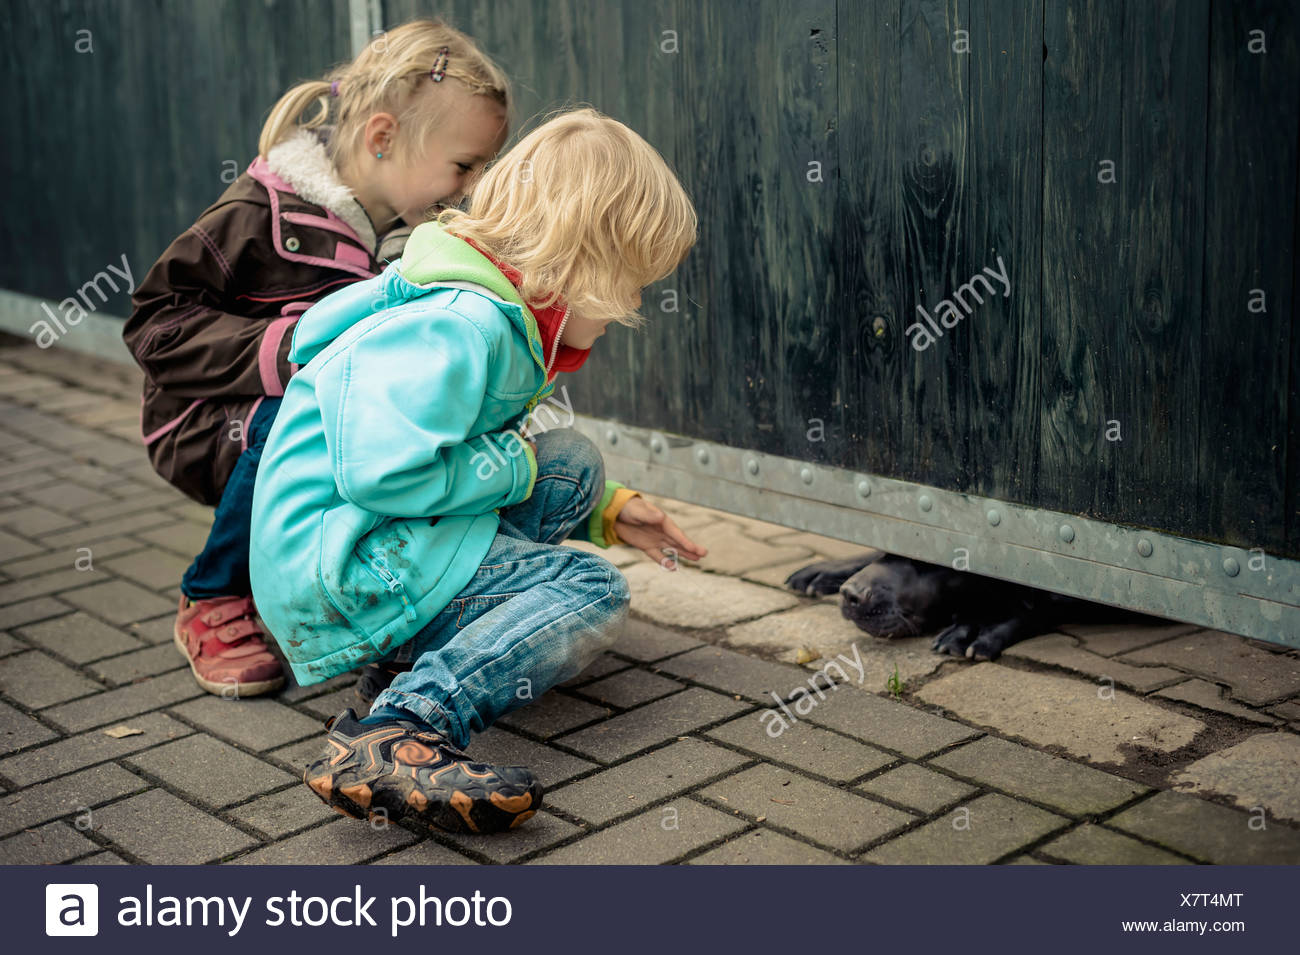 Two children looking at snout of watchdog - Stock Image